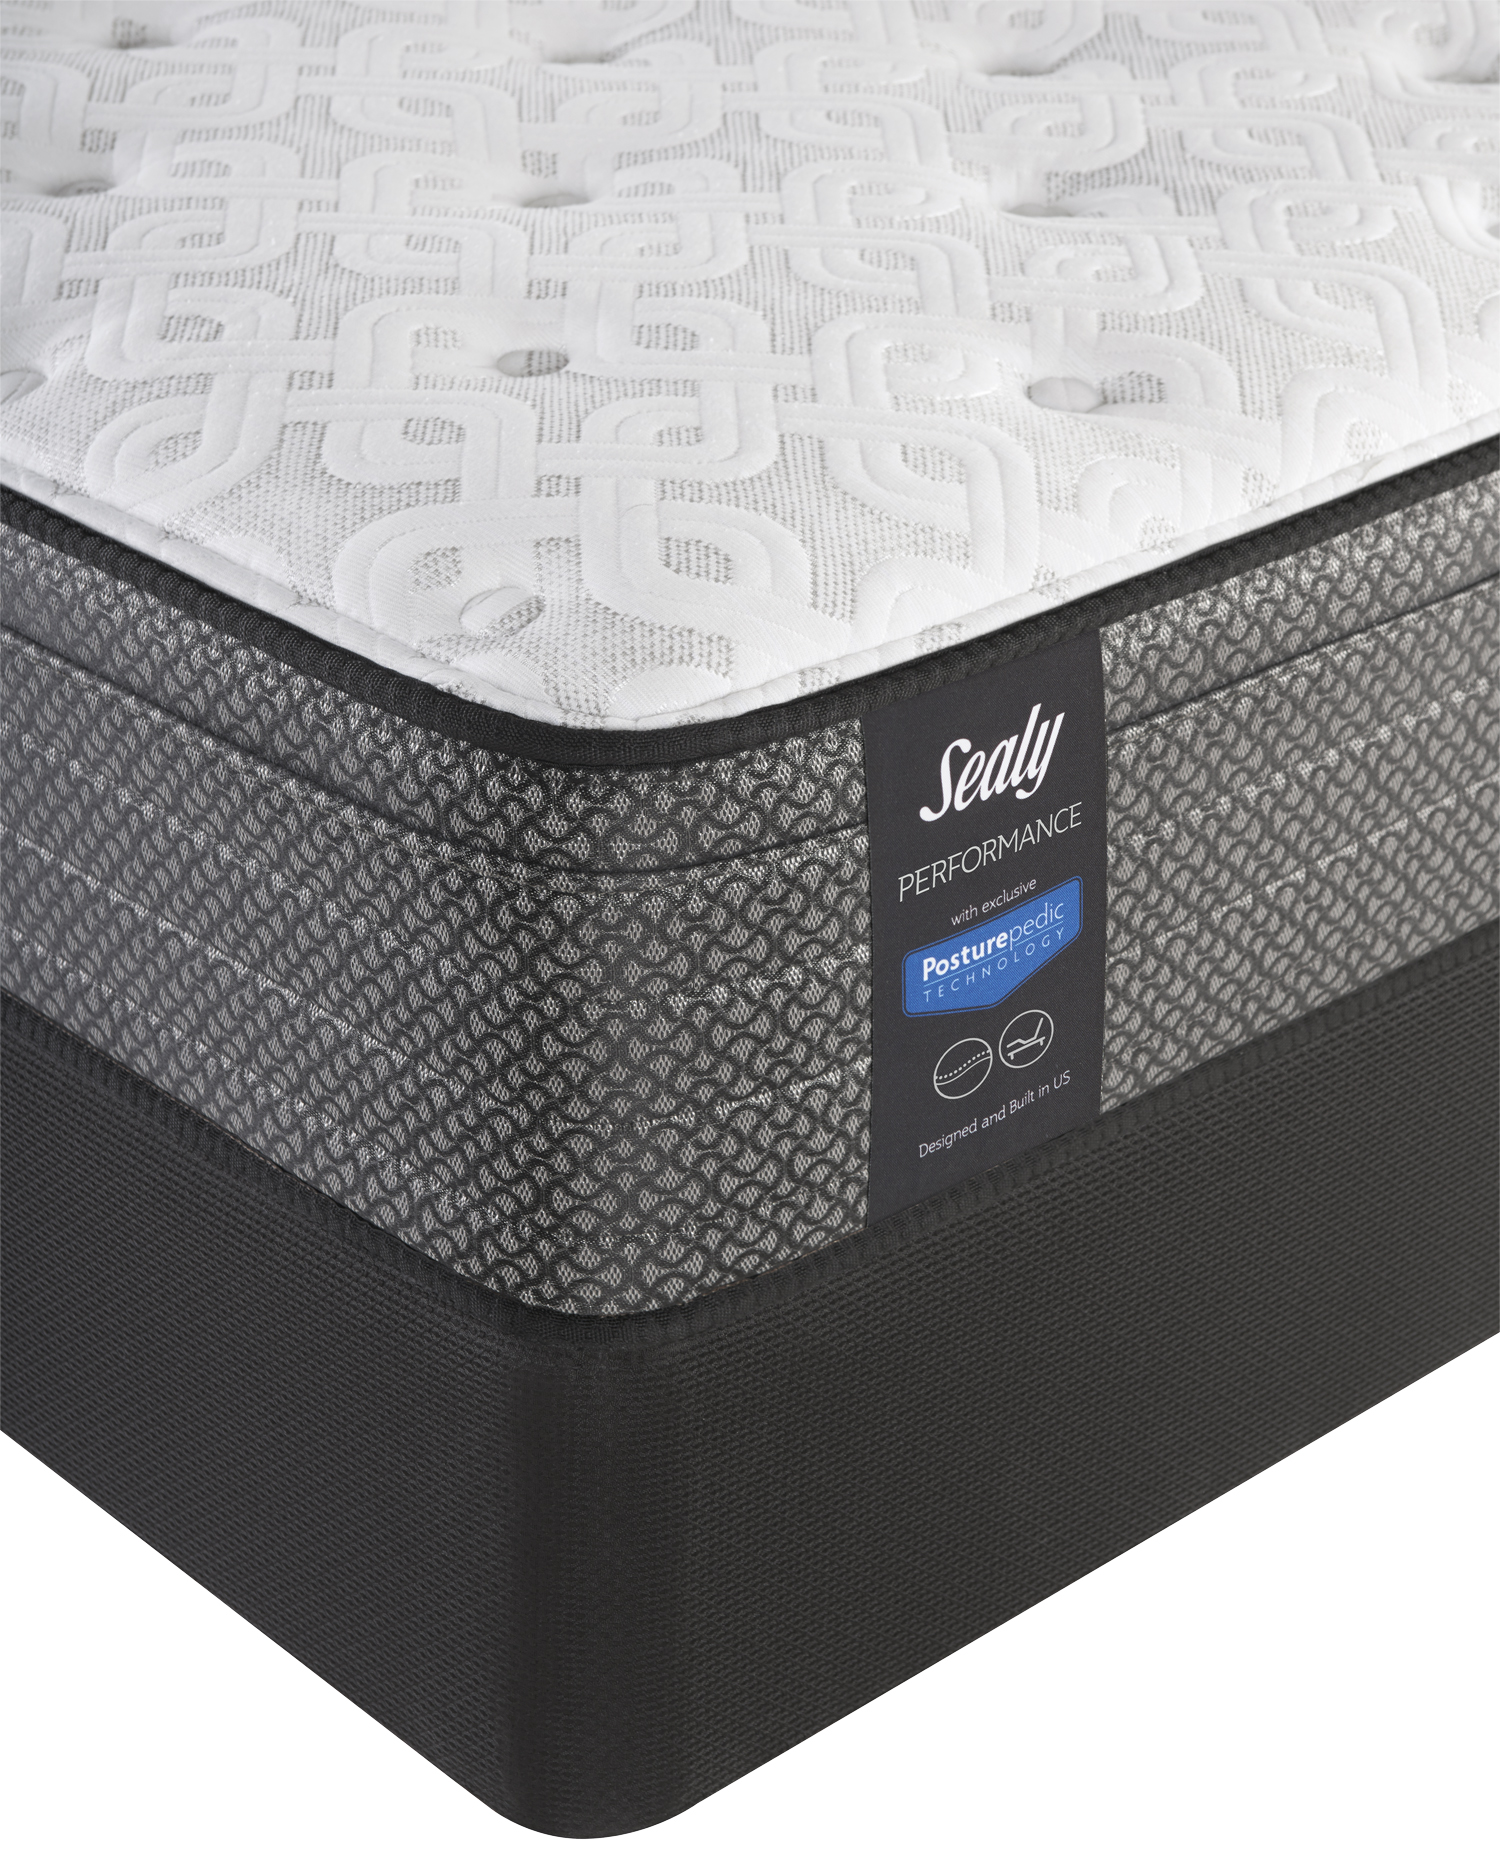 sealy response performance kenney firm mattress reviews goodbed com